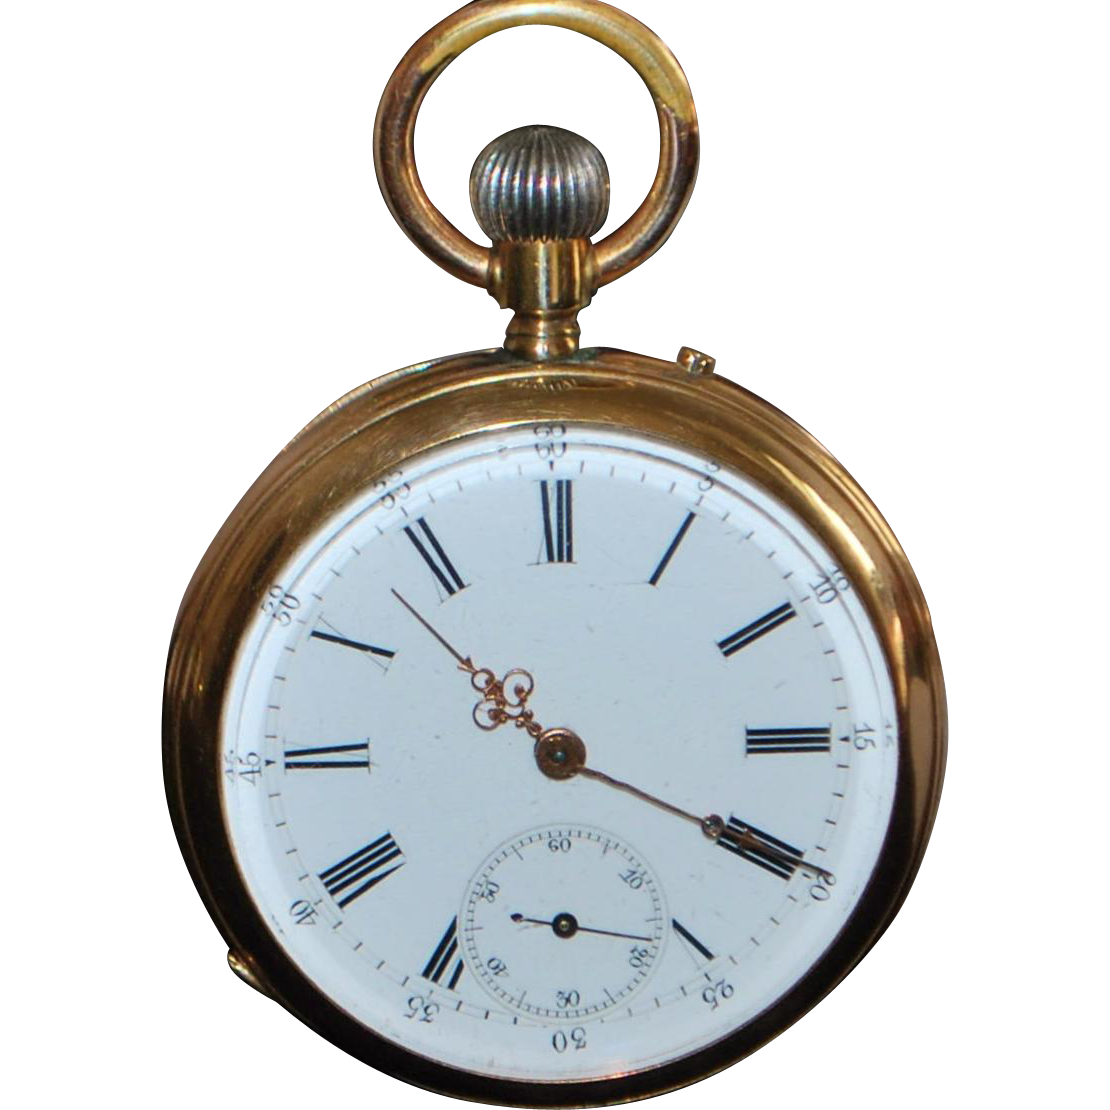 Fine 14K Swiss OF Pocket Watch - 1890's